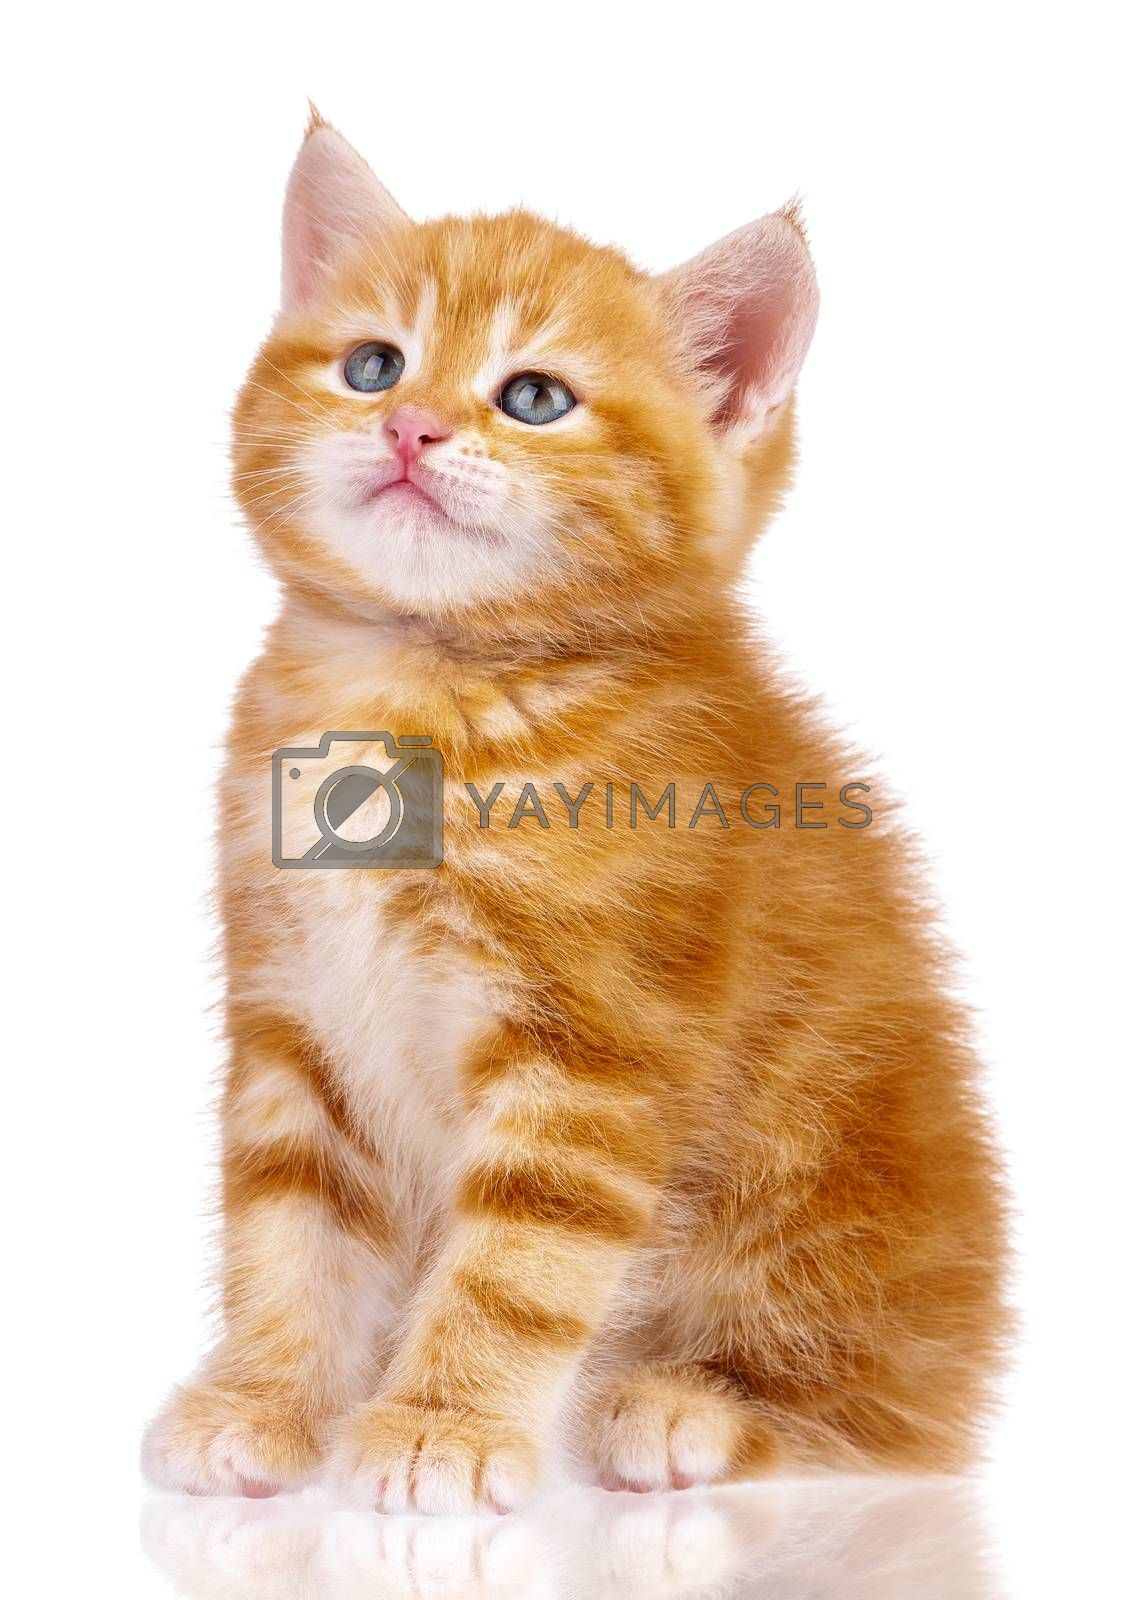 Playful red kitten isolated on white background. Cute little red cat studio shot.